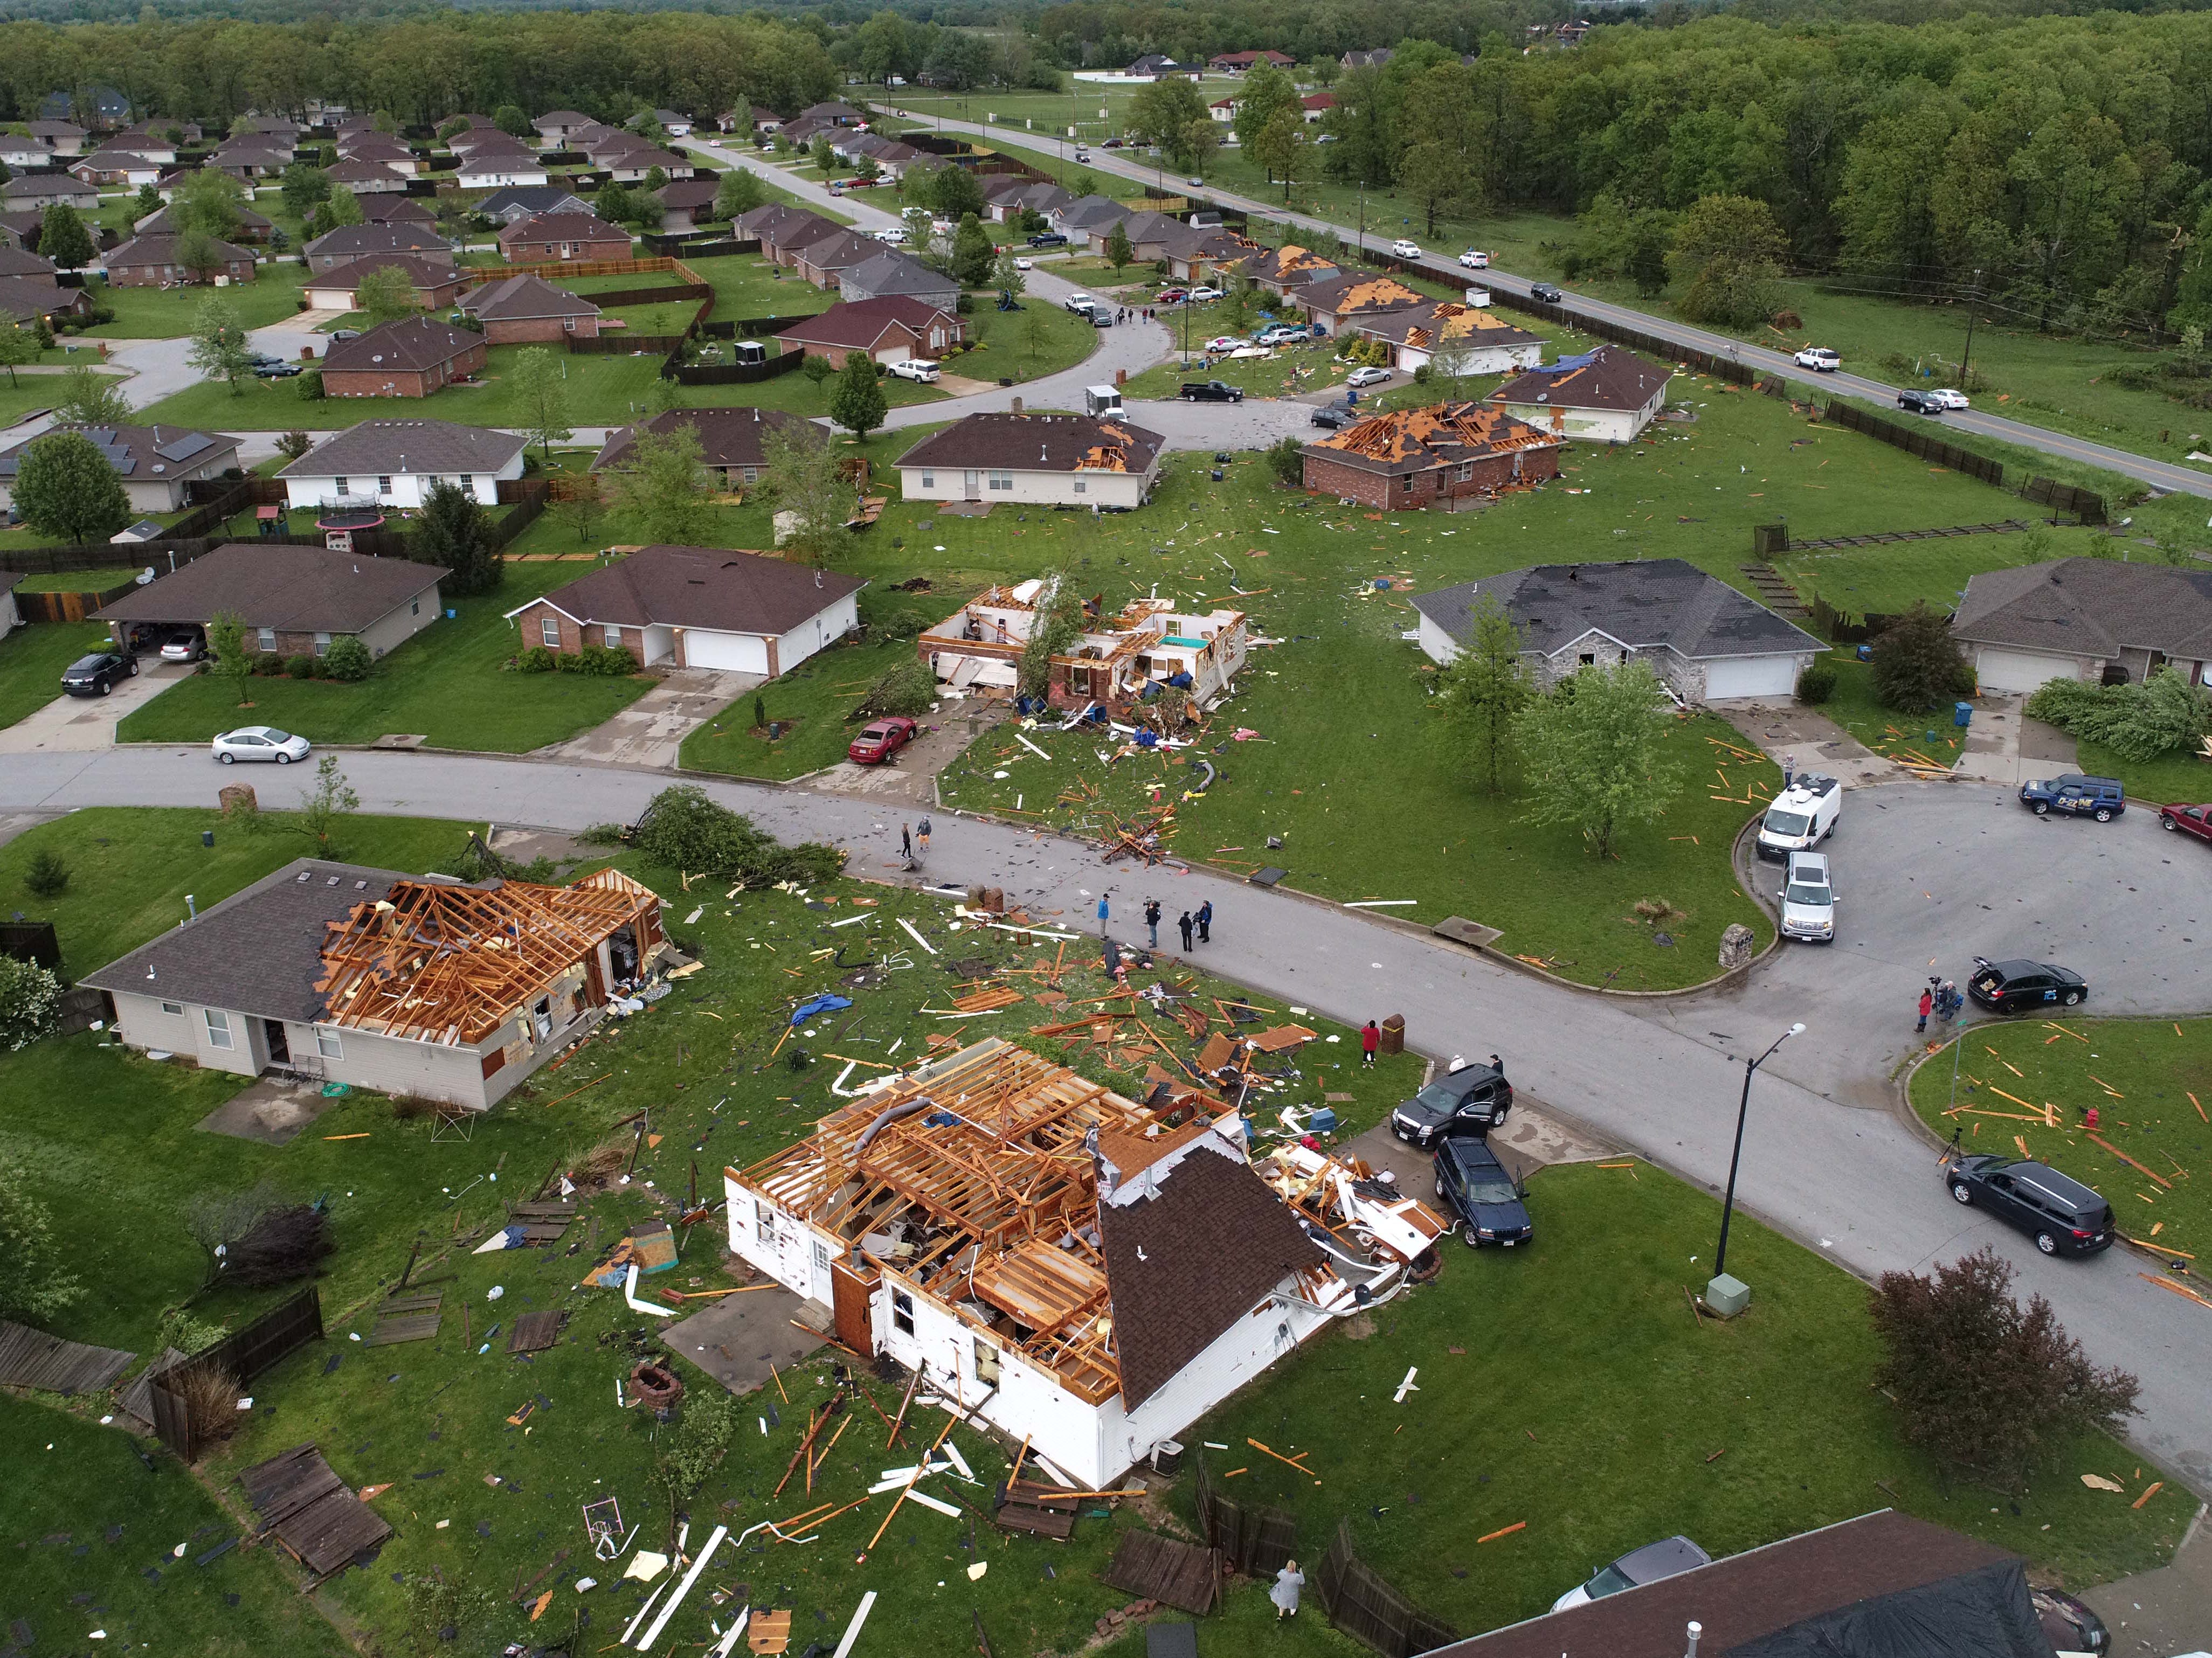 Aerial photos of storm damage from likely tornado in Ozark